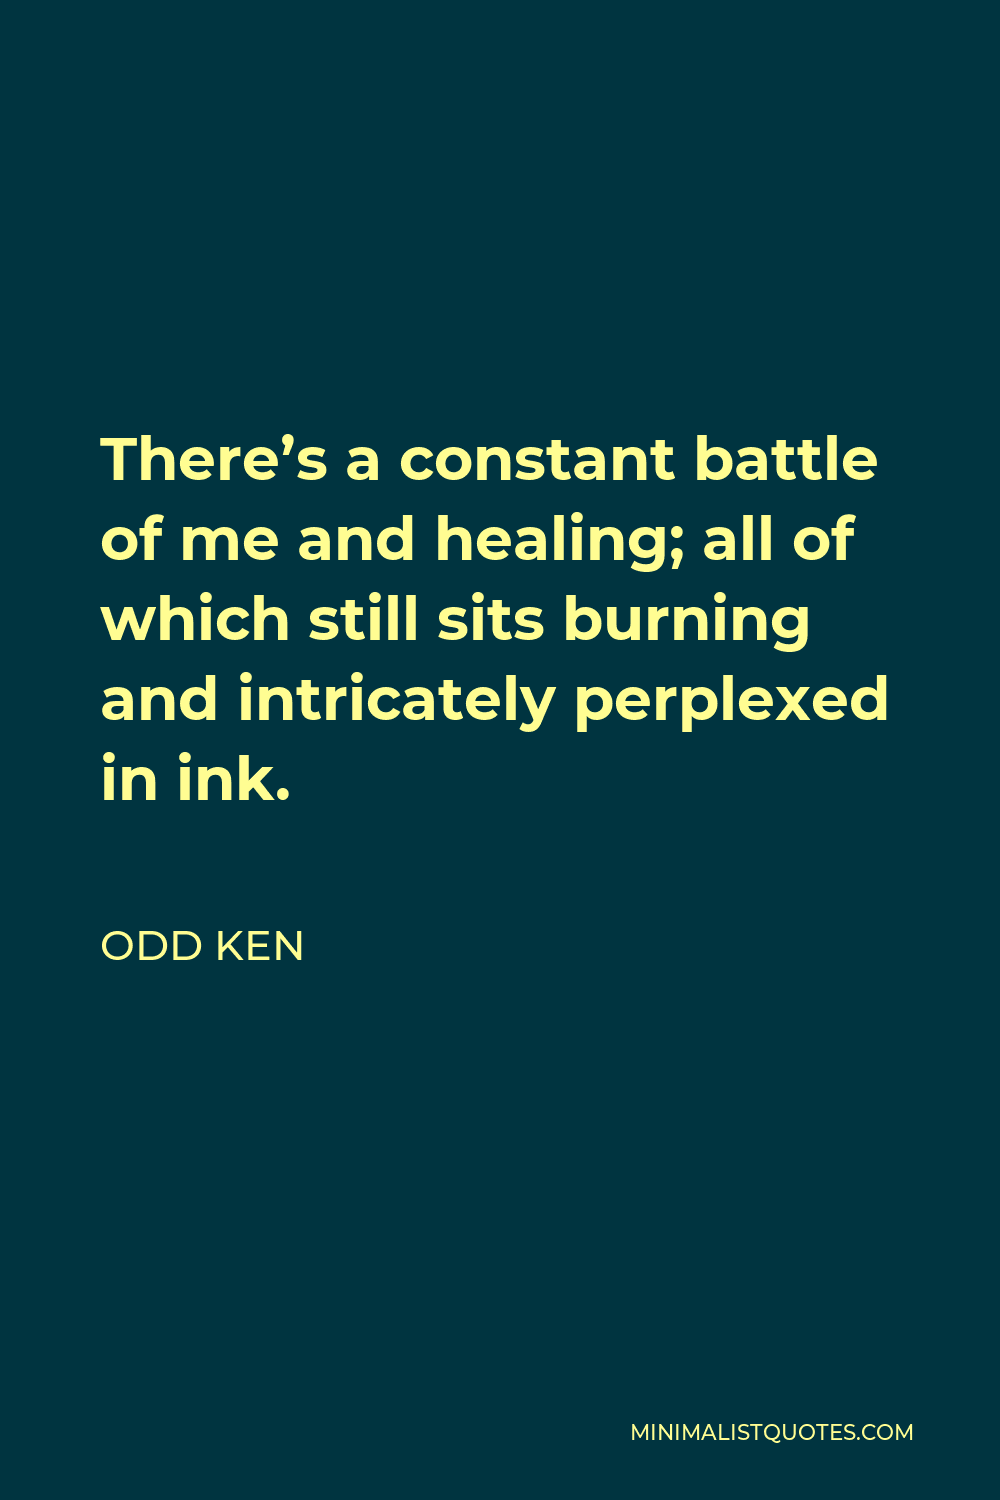 Odd Ken Quote - There's a constant battle of me and healing; all of which still sits burning and intricately perplexed in ink.